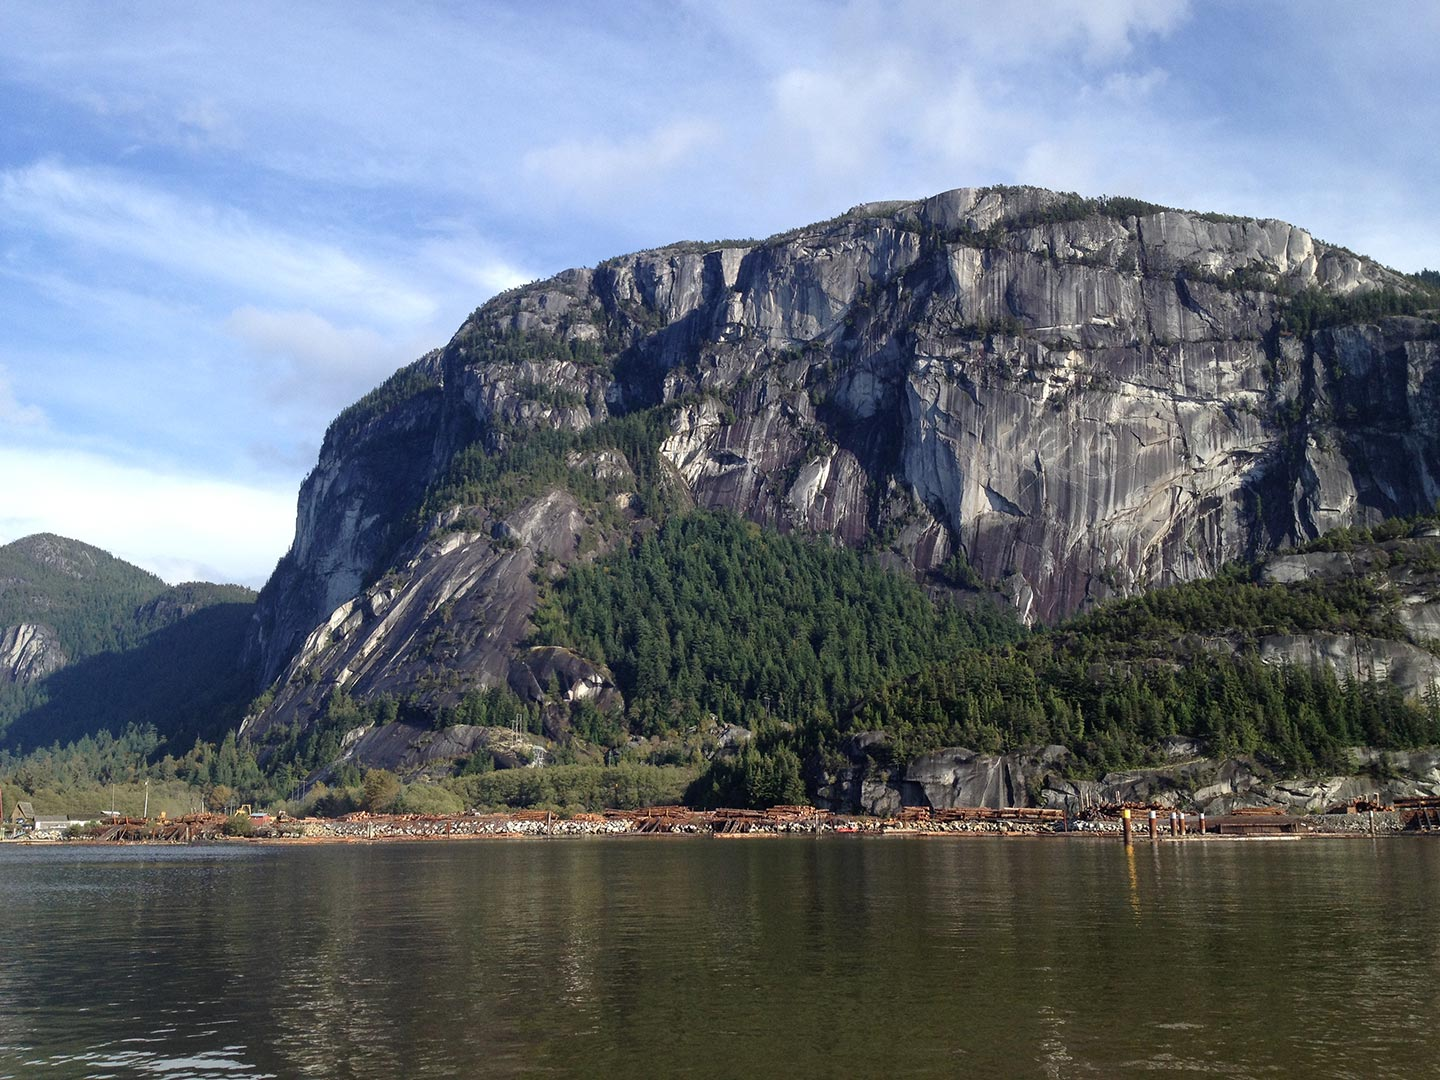 The Chief in Squamish